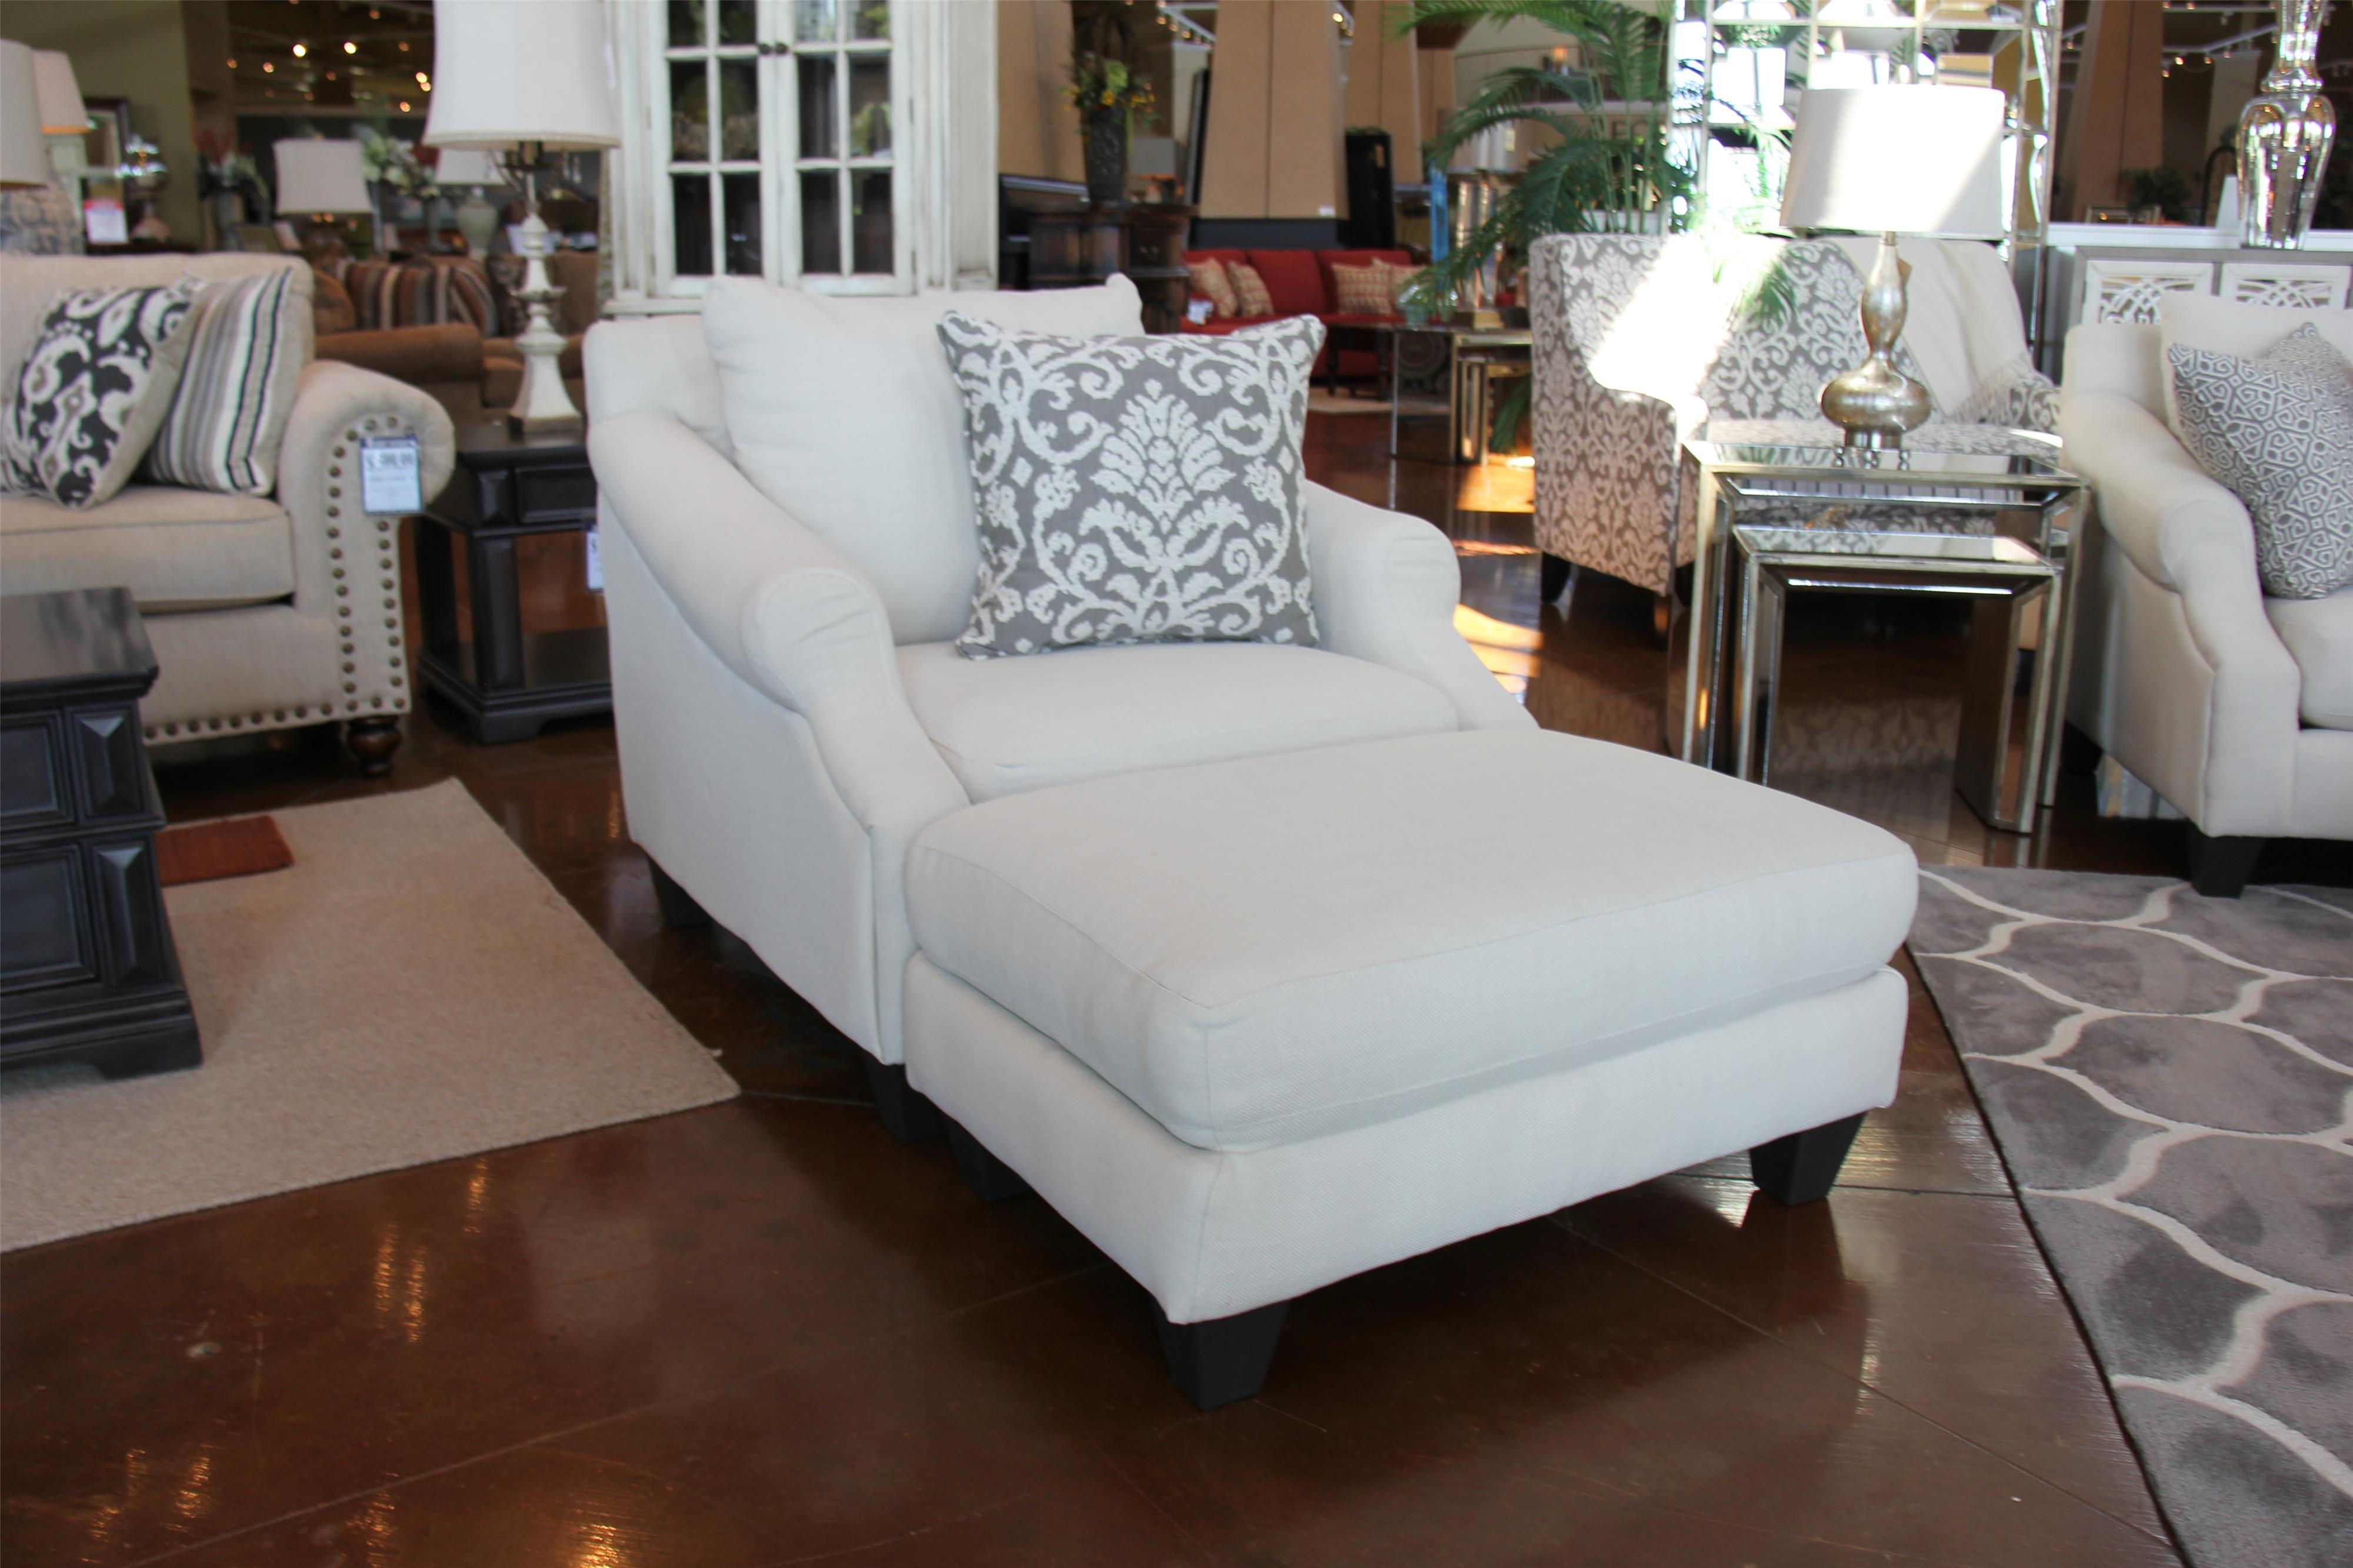 Corinthian 56A0 Lavish Cream Ottoman - Item Number: 56A6